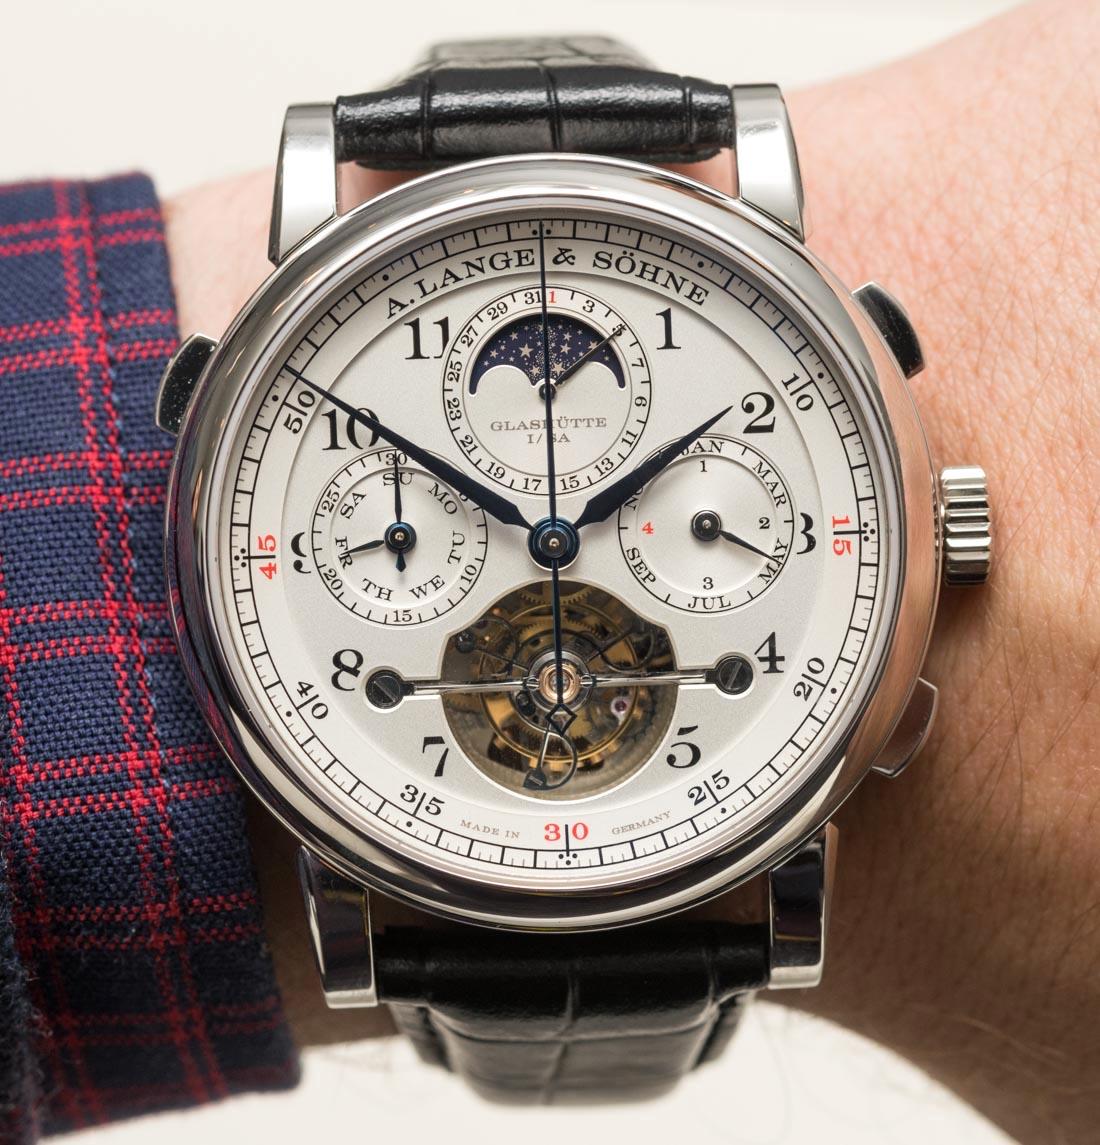 Luxury A. Lange & Söhne Tourbograph Perpetual 'Pour Le Mérite' Watch Hands-On Replica Watches Free Shipping